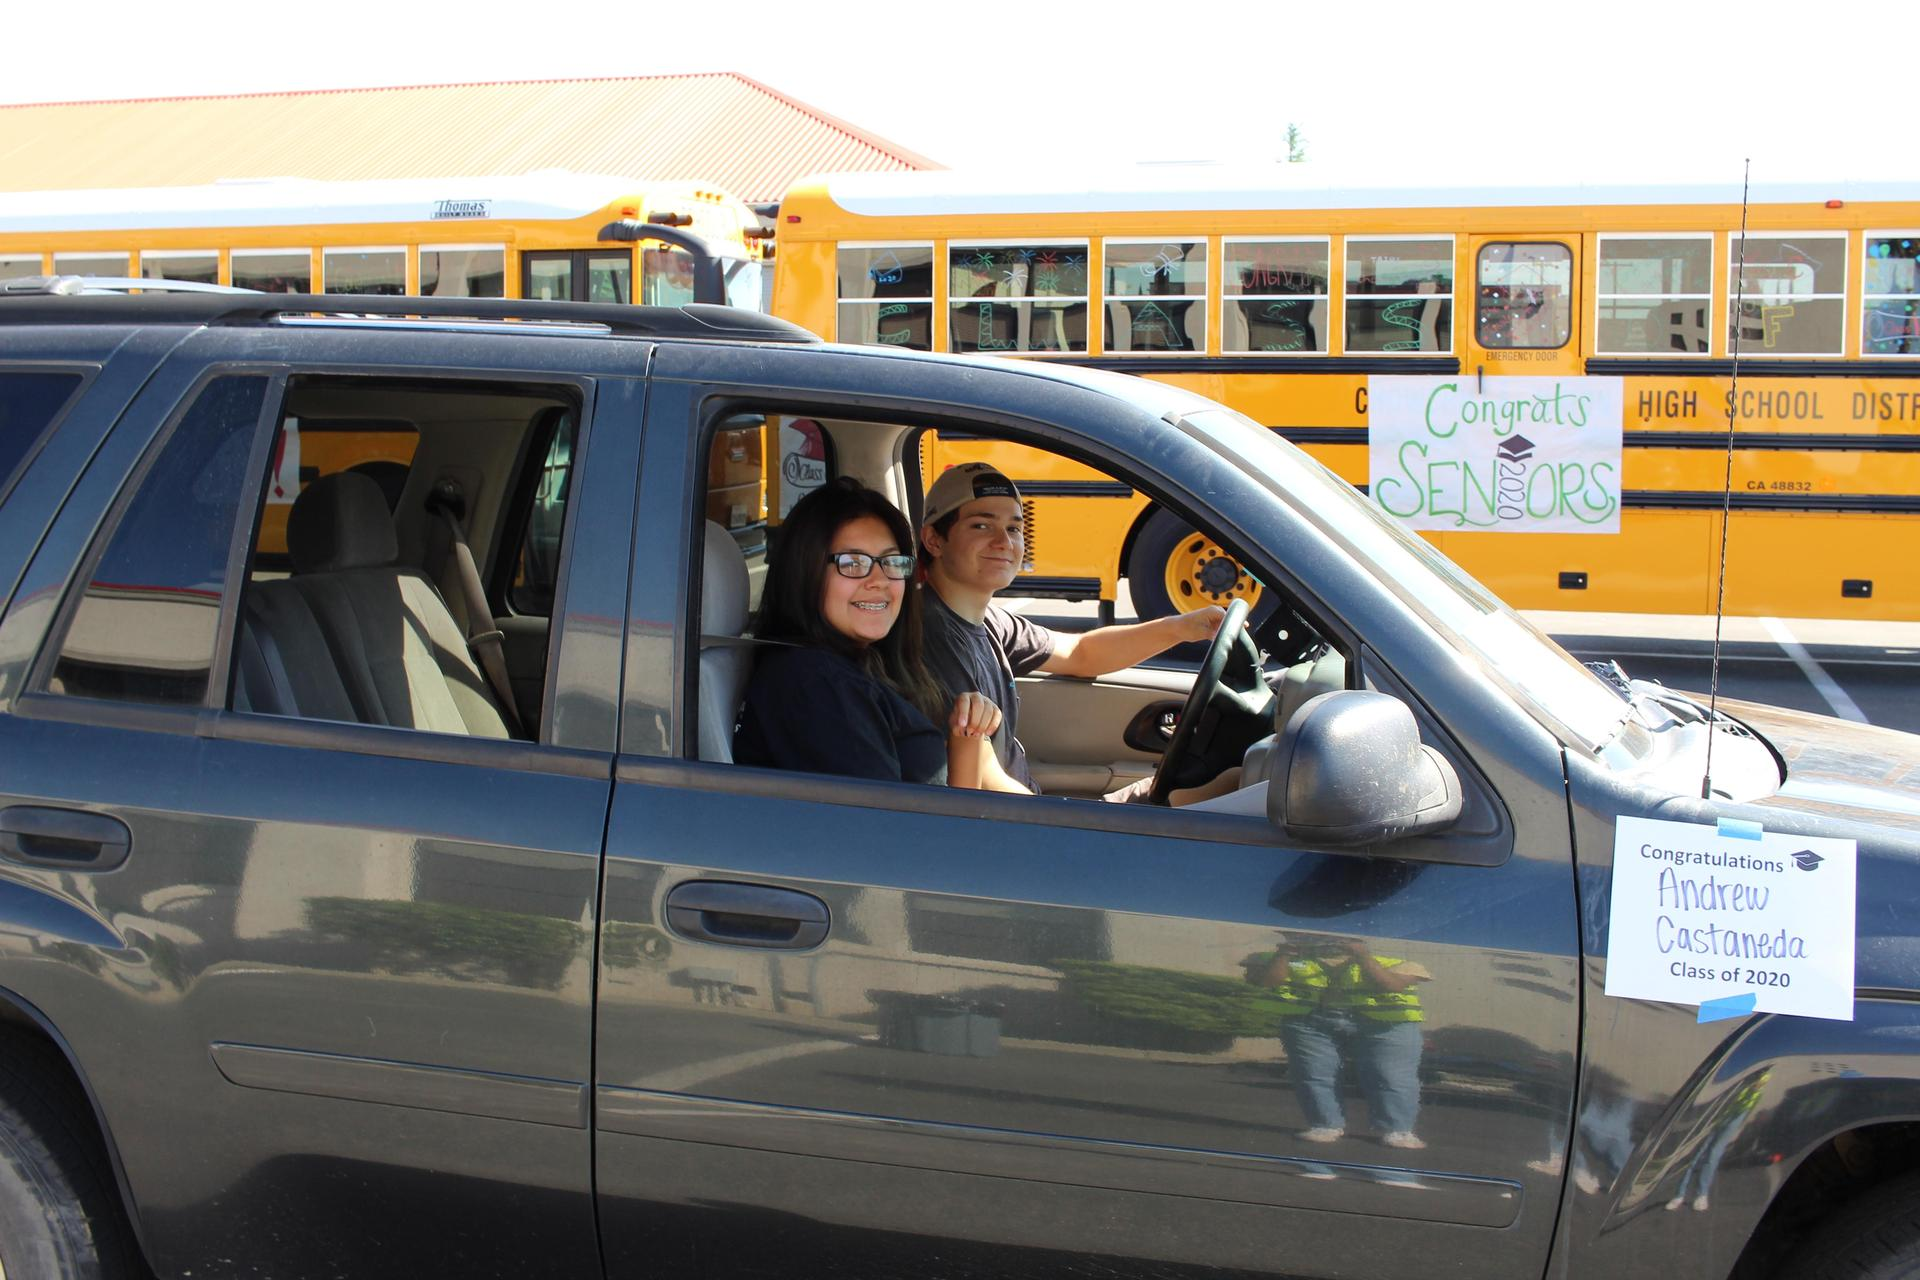 Frances Ceja riding with Andrew Castaneda driving